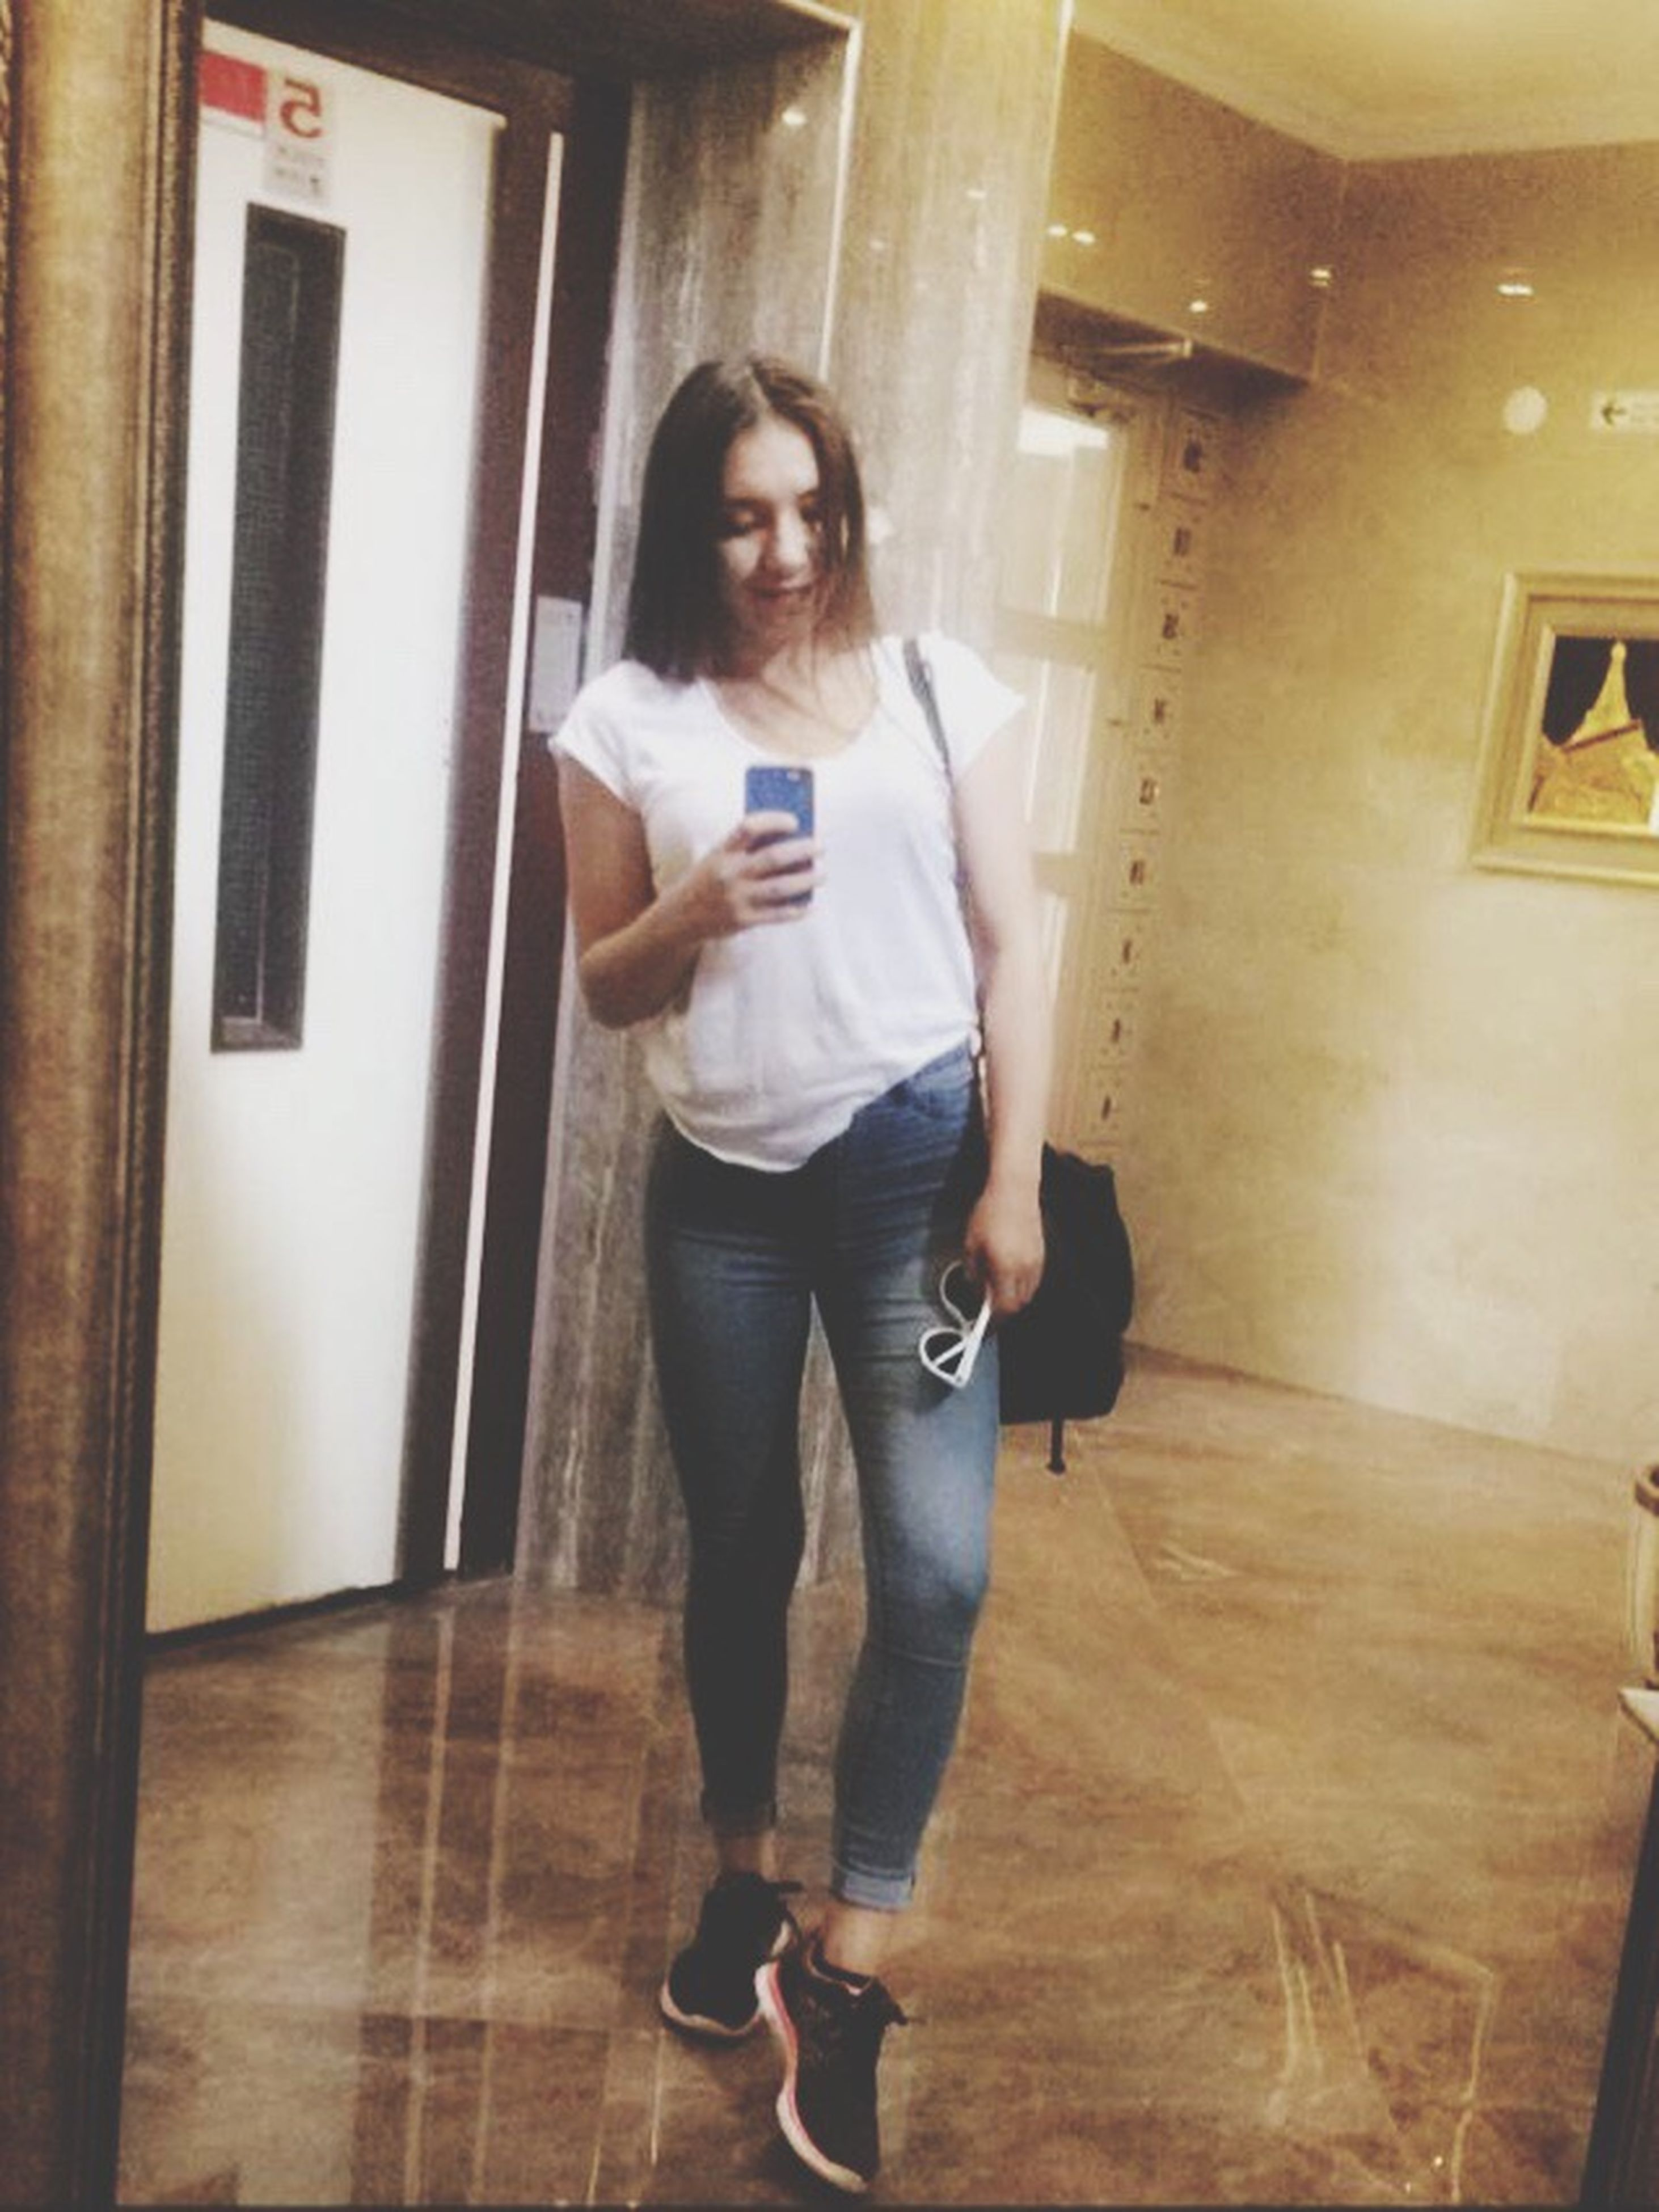 indoors, full length, person, lifestyles, casual clothing, leisure activity, young adult, standing, front view, three quarter length, home interior, childhood, door, elementary age, looking at camera, holding, portrait, boys